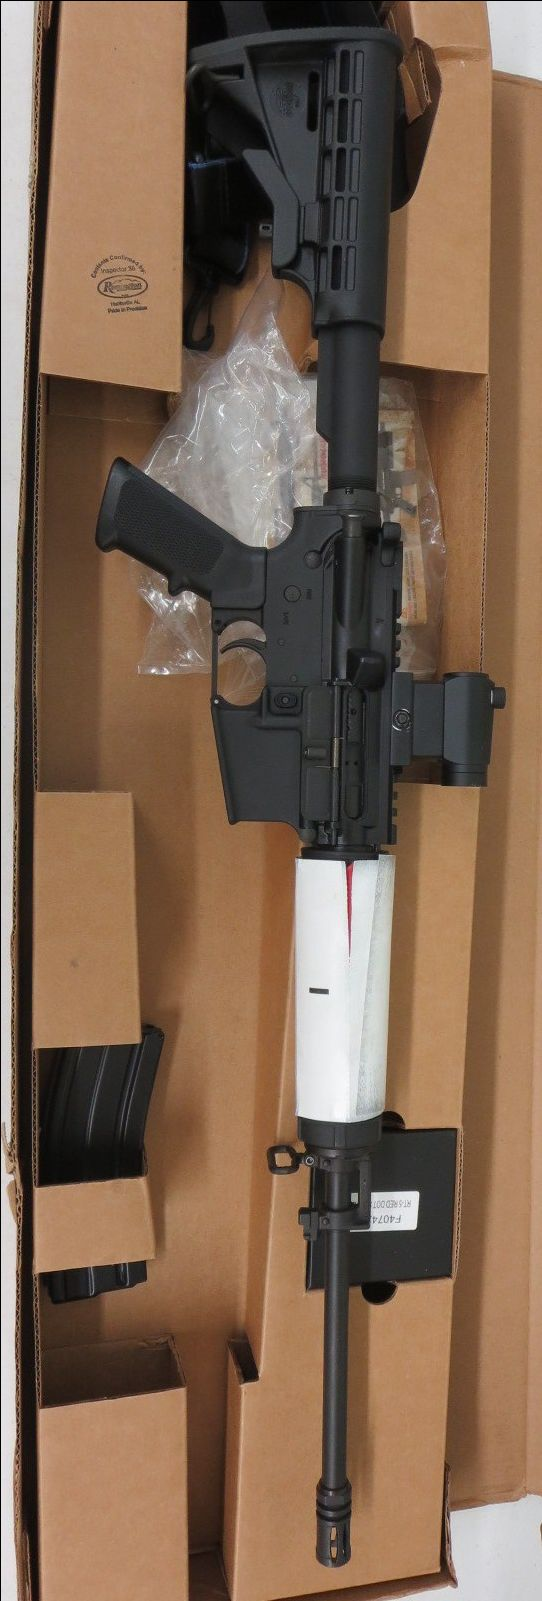 Used Bushmaster AR-15 5.56/.223 w/ red dot and box $575 - http://www.gungrove.com/used-bushmaster-ar-15-5-56-223-w-red-dot-and-box-575/